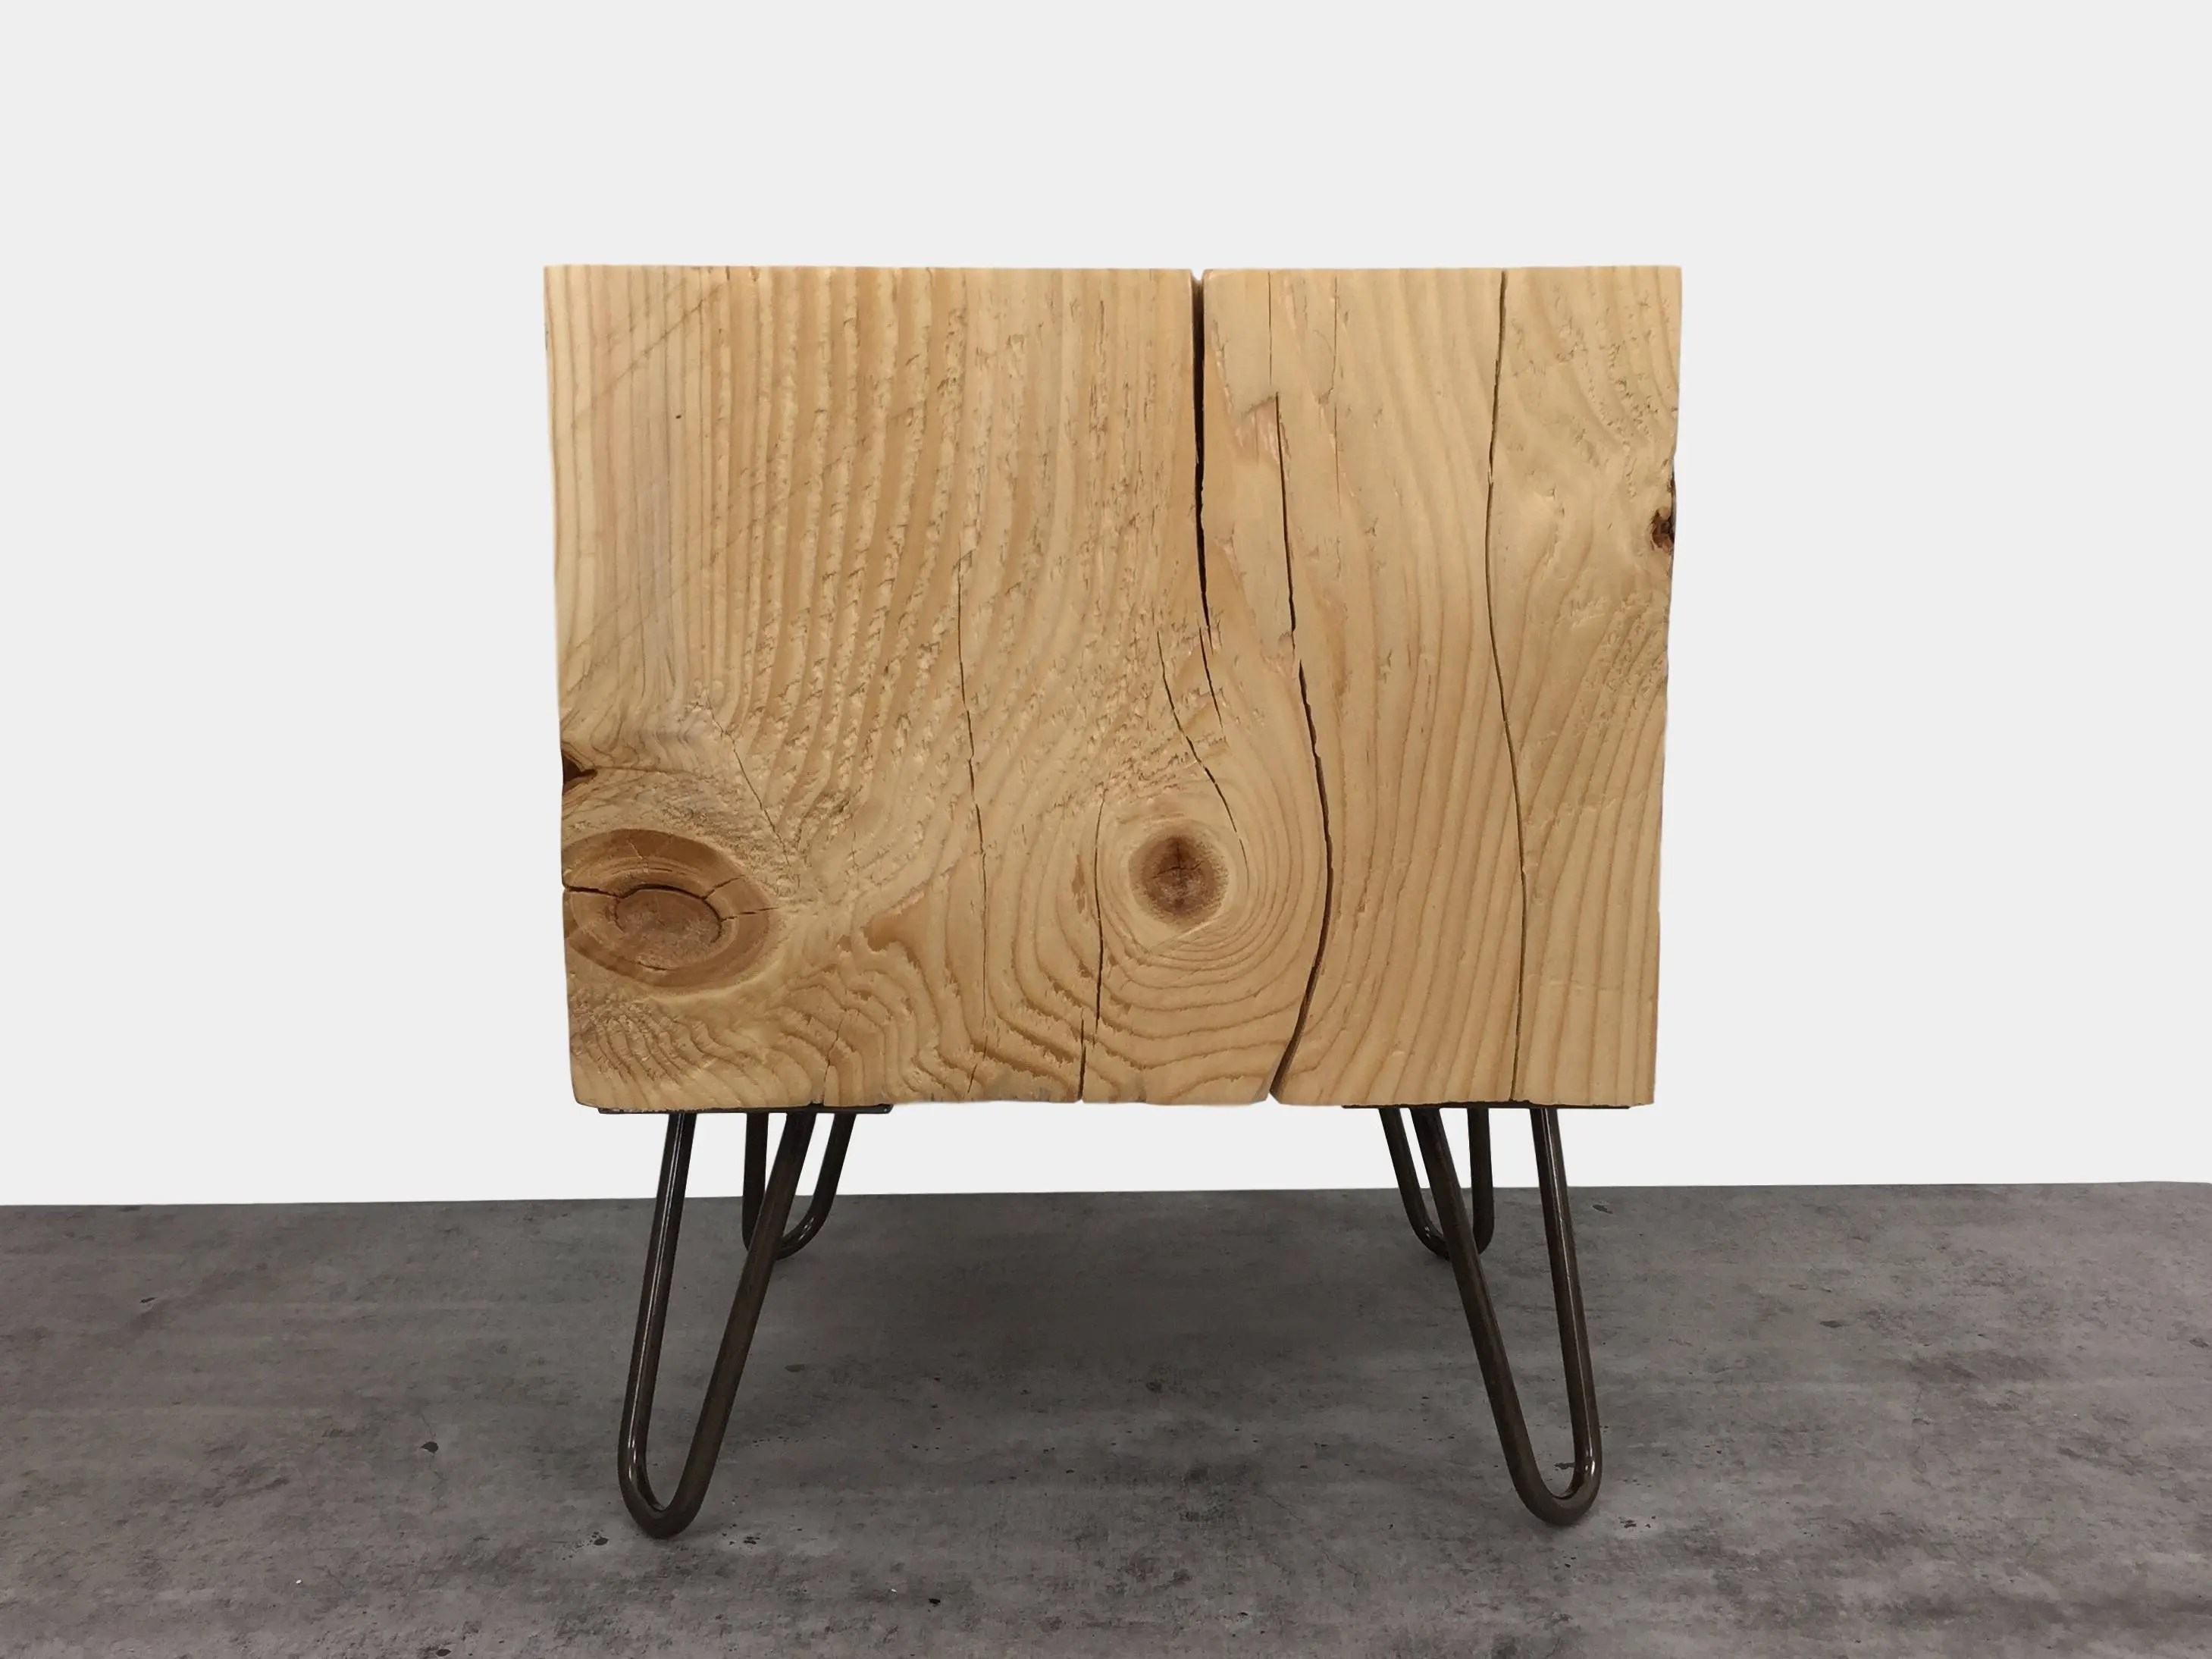 Wood Block End Tables Timber Side Table Wood Block Coffee Table End Table Tree